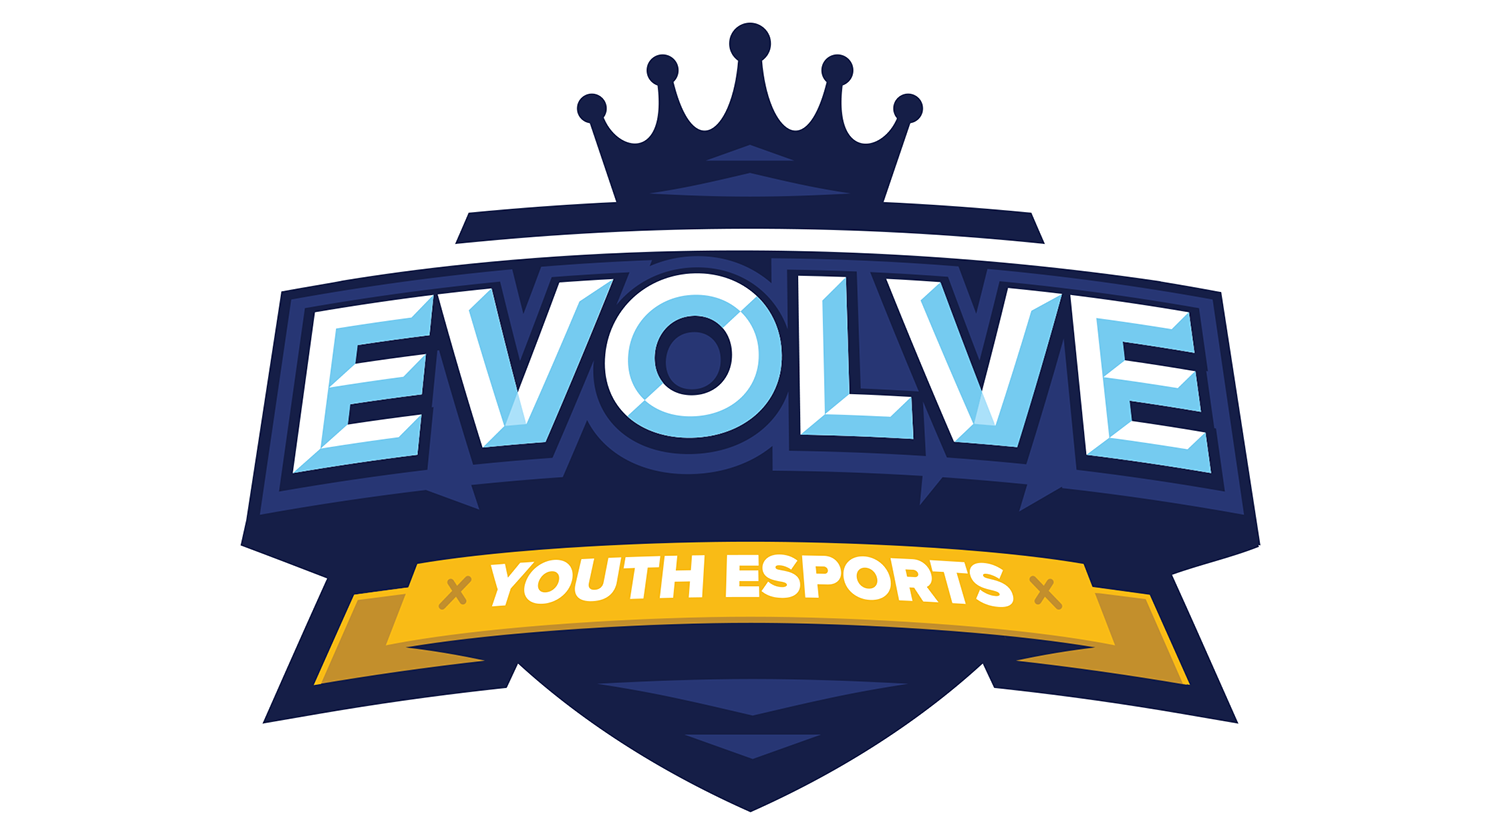 Evolve Youth Esports - Video game leagues for kids